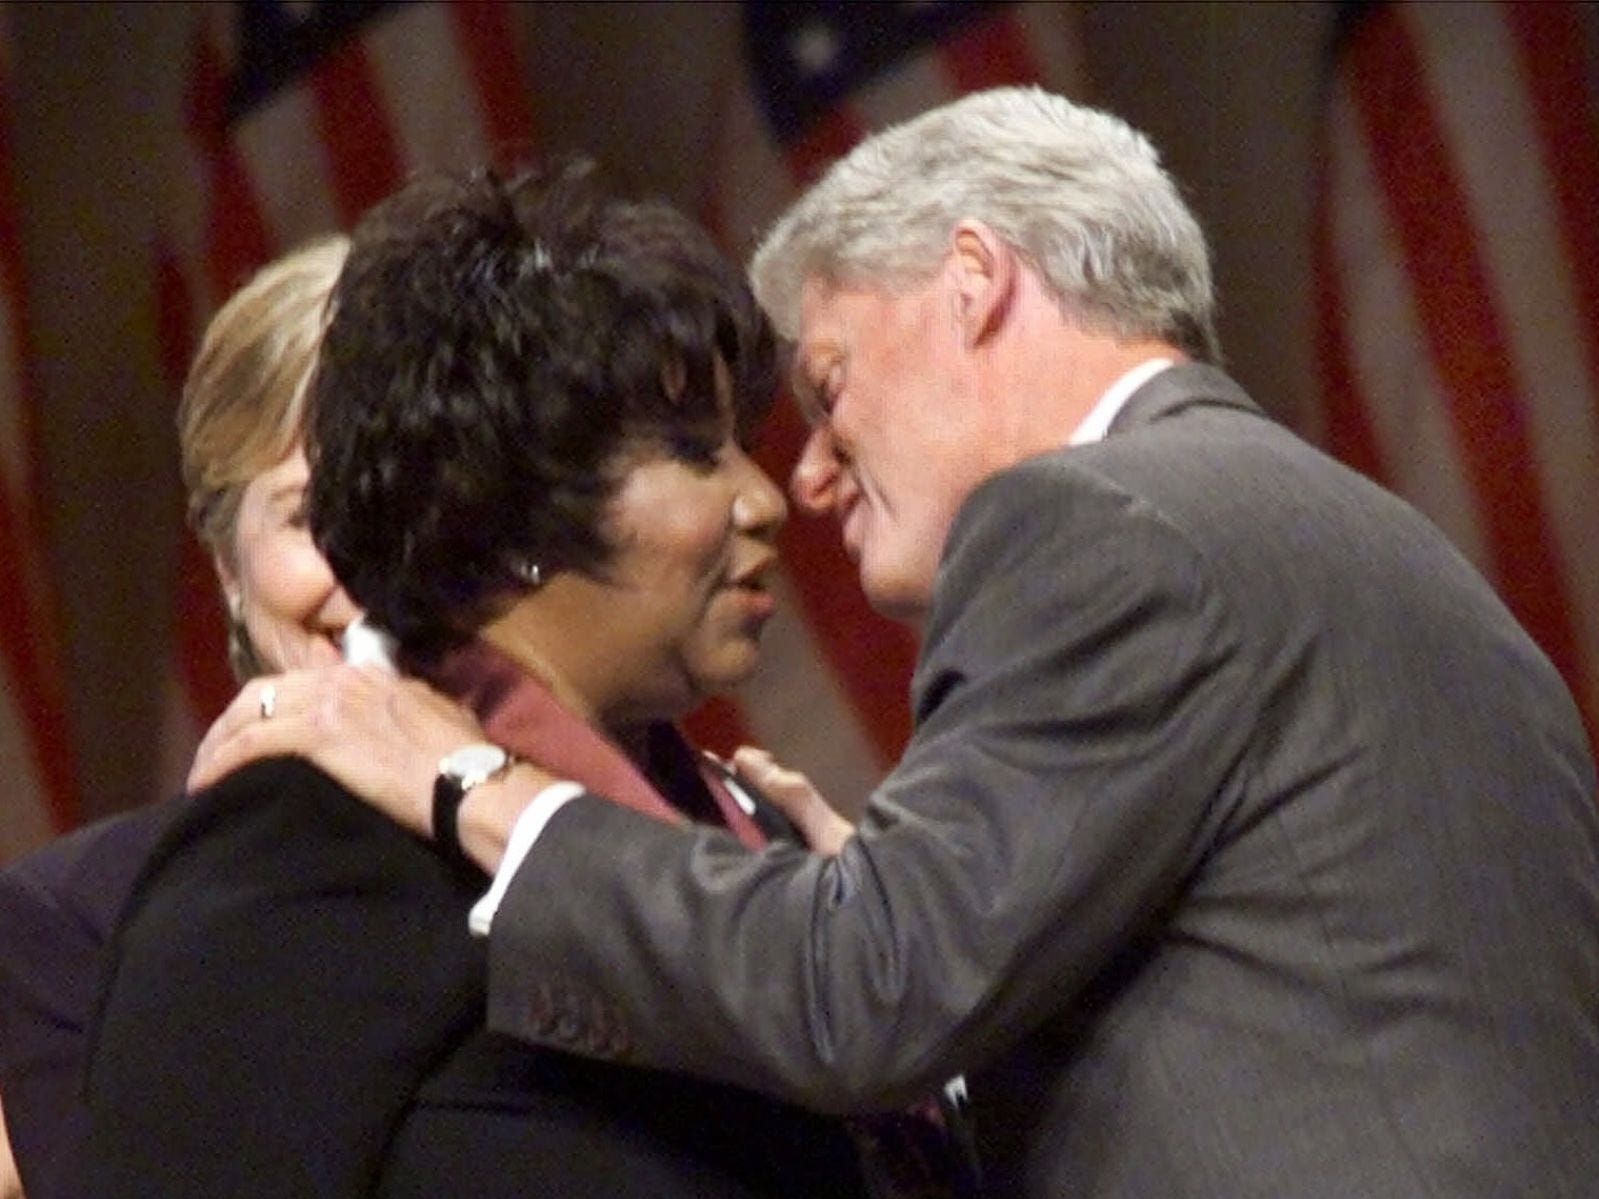 President Clinton prepares to kiss singer Aretha Franklin after awarding her with a National Medal of Arts during a ceremony in Washington Wednesday, Sept. 29, 1999. First lady Hillary Rodham Clinton is at left.